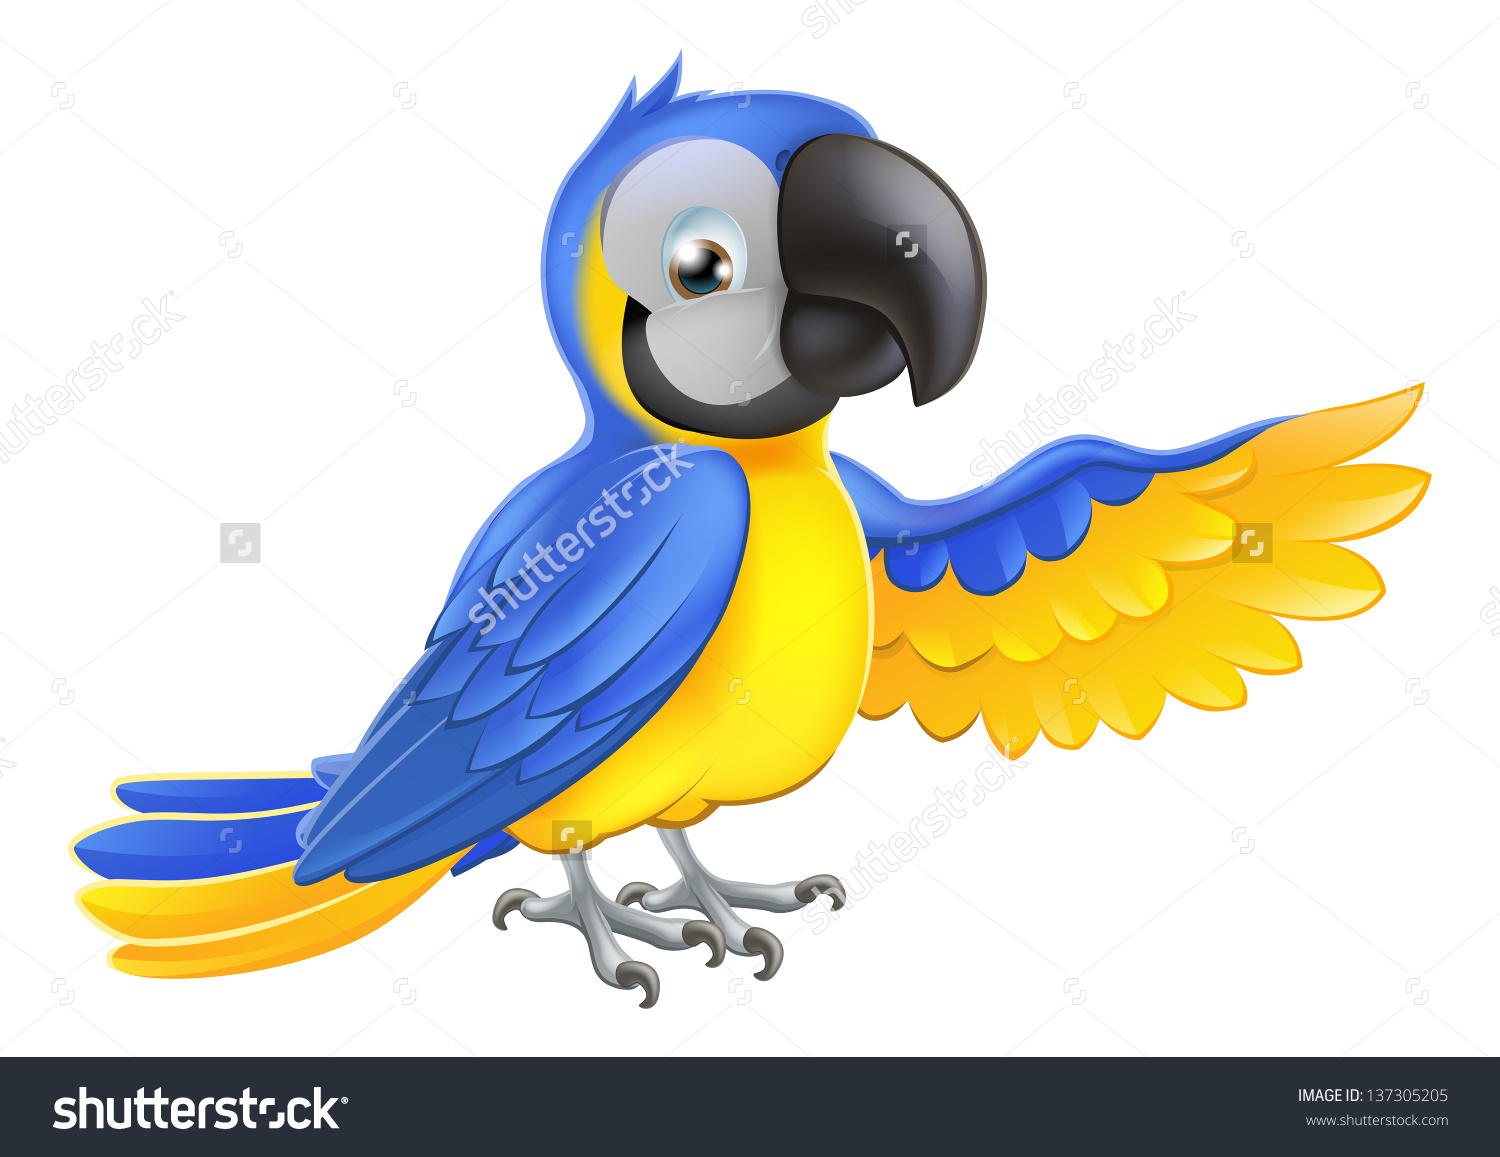 Blue-and-yellow Macaw clipart #6, Download drawings